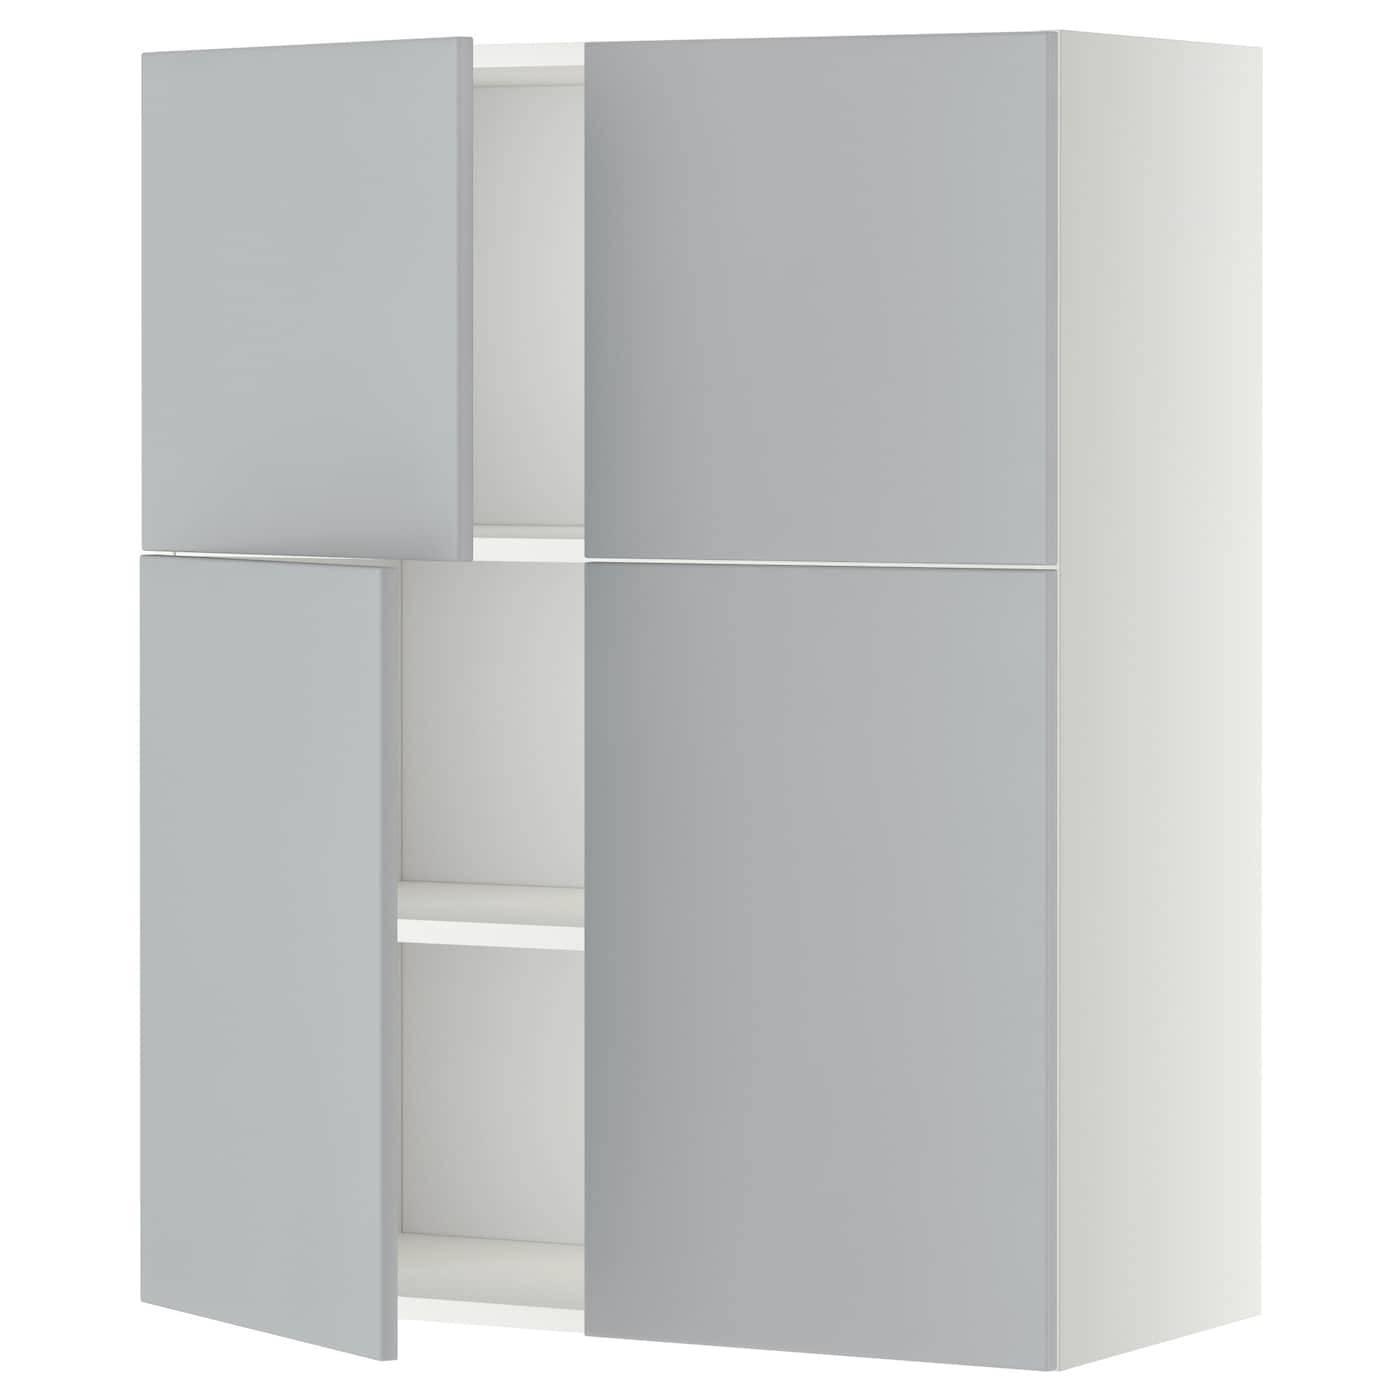 ikea wall cabinets metod wall cabinet with shelves 4 doors white veddinge 11730